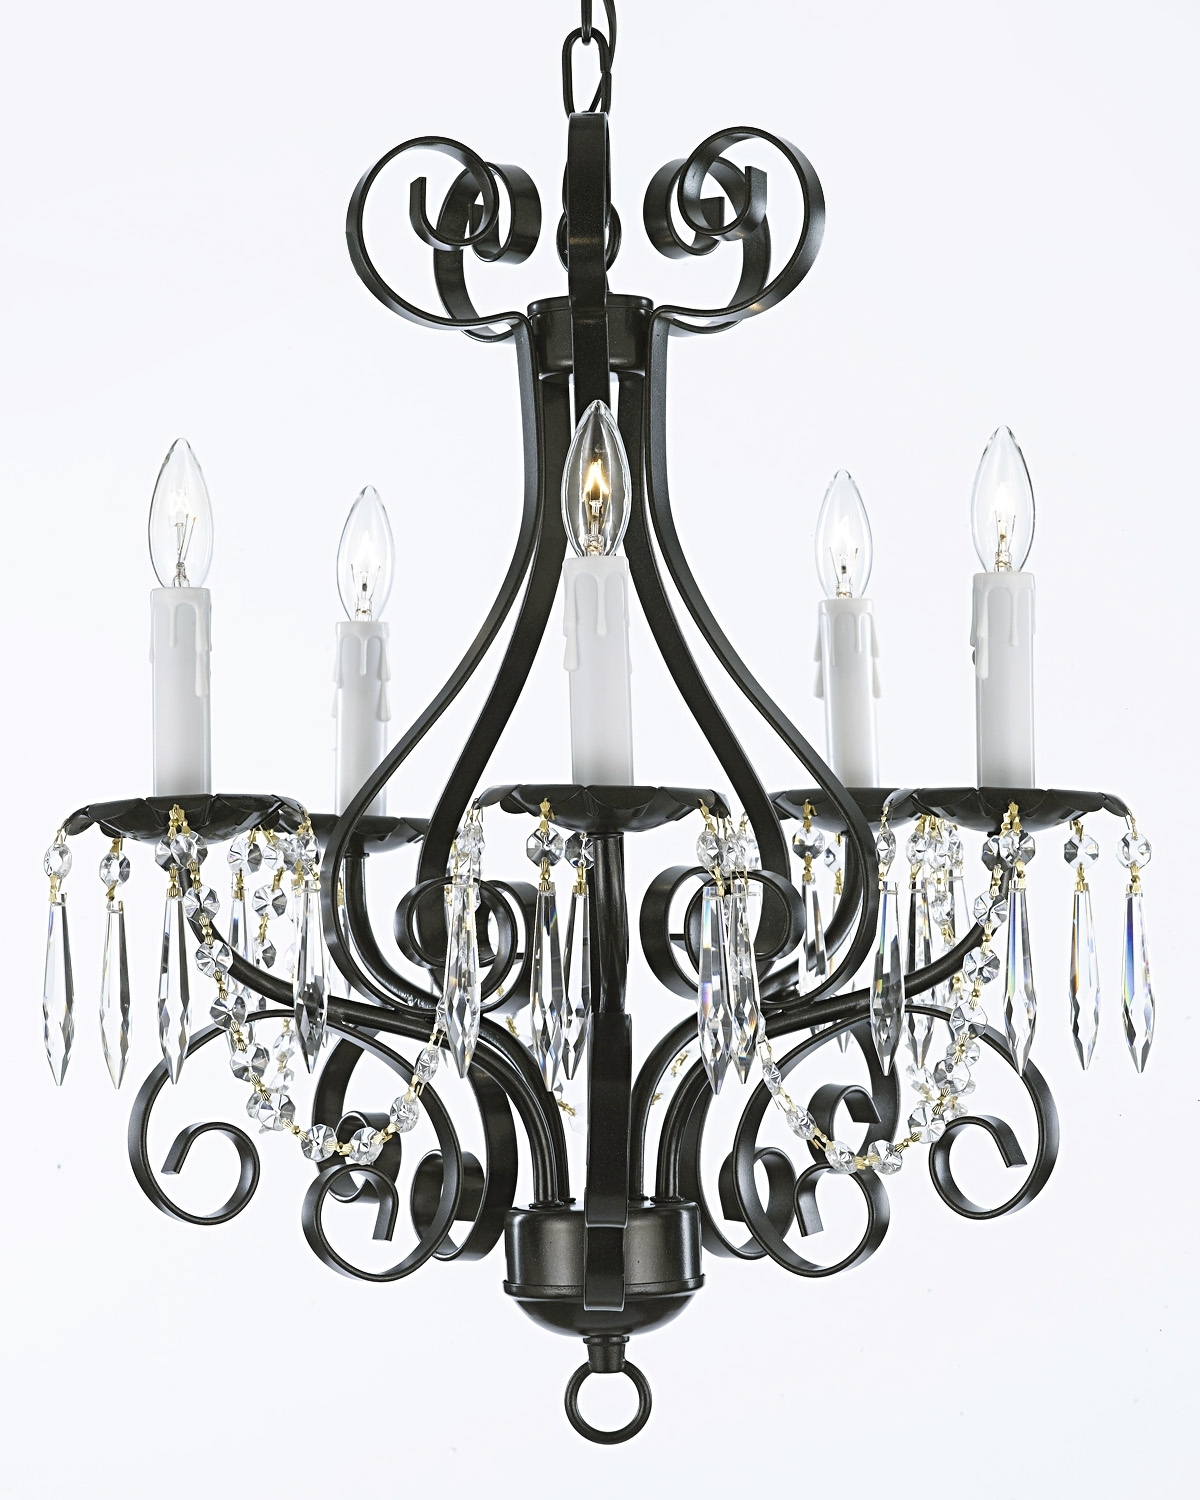 Black Iron Chandeliers With Regard To Most Up To Date Chandelier (View 10 of 20)